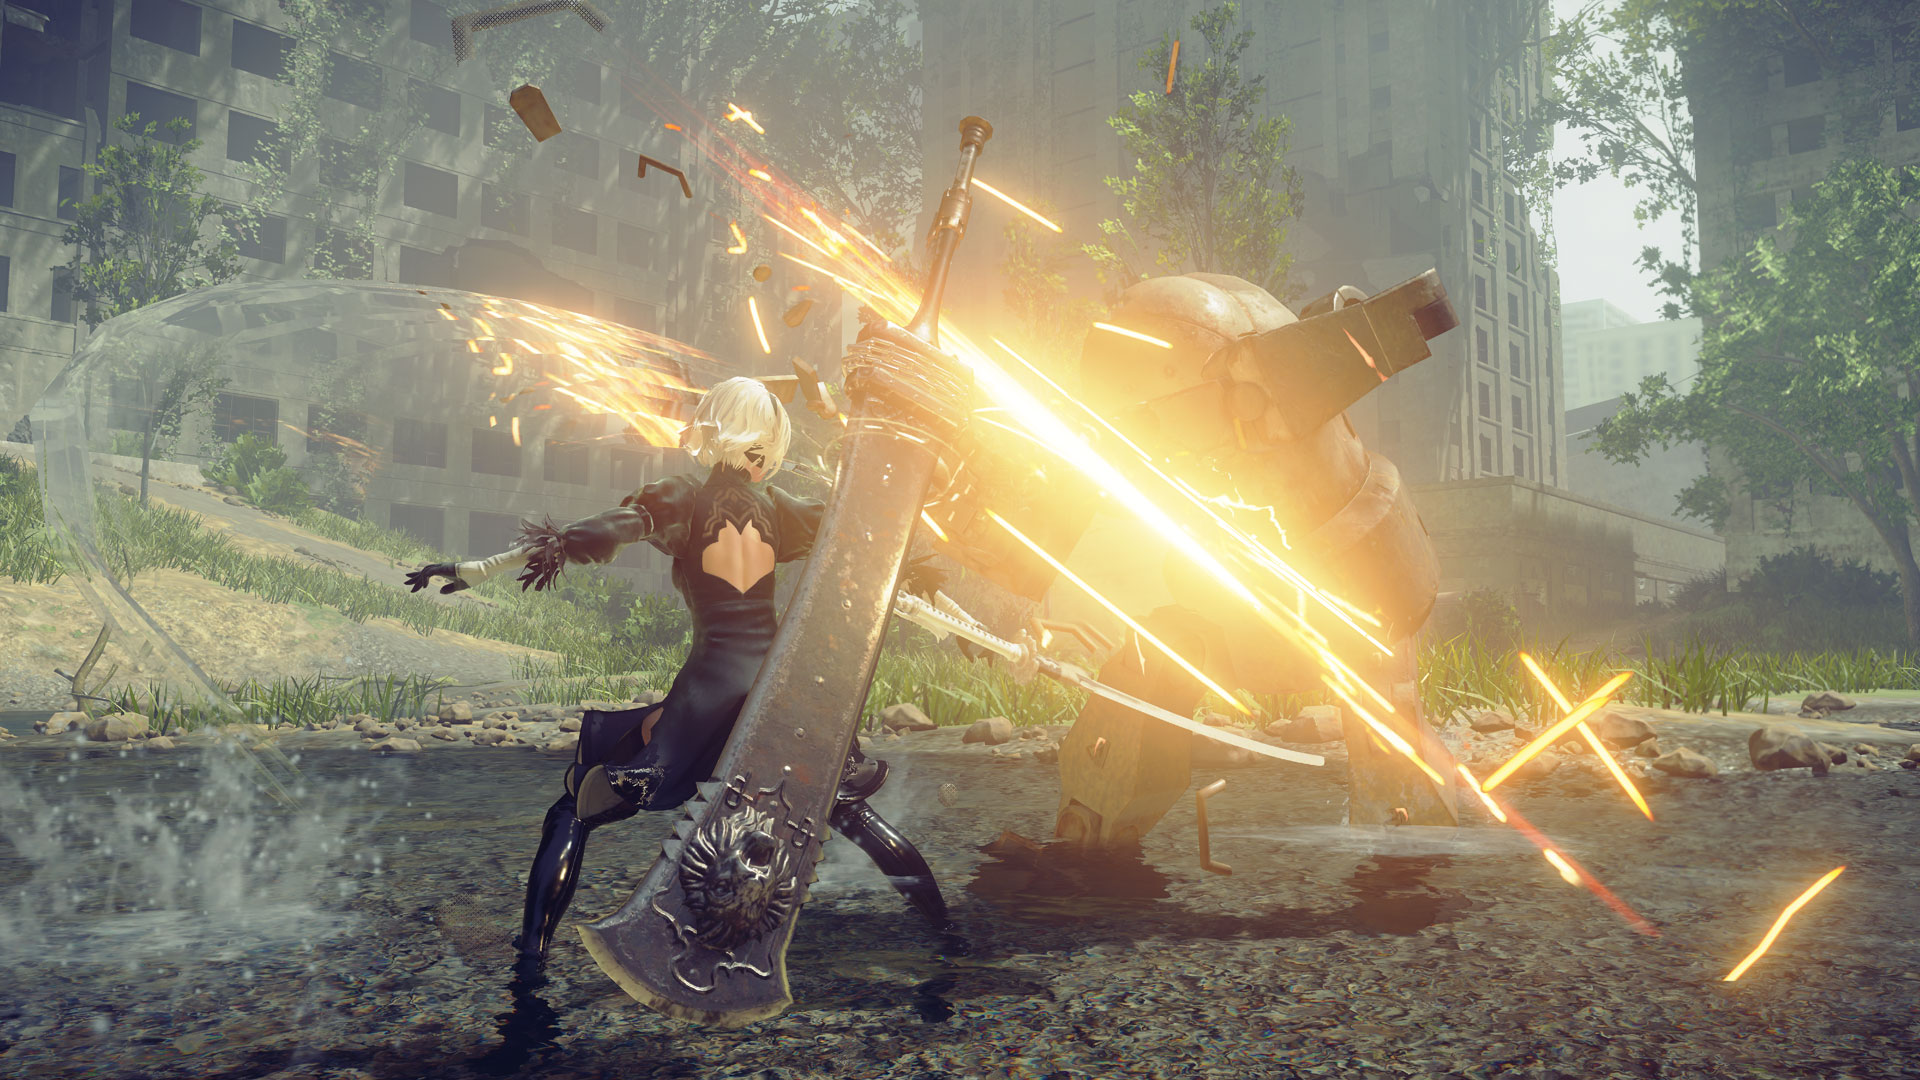 Nier: Automata, Nier, game of the yohra, year, edition, ps4, steam, new, trailer, features